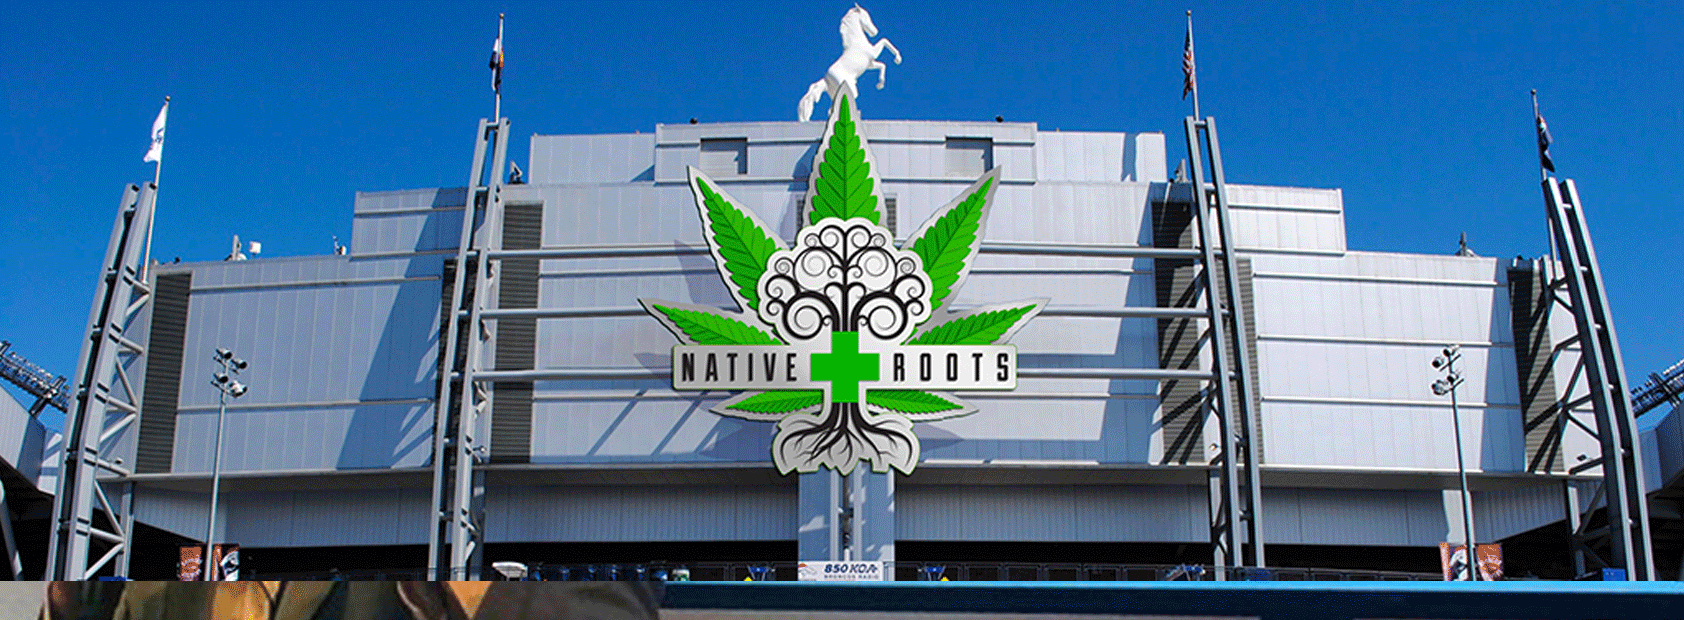 Native Roots Seeks Naming Rights of Mile High Stadium